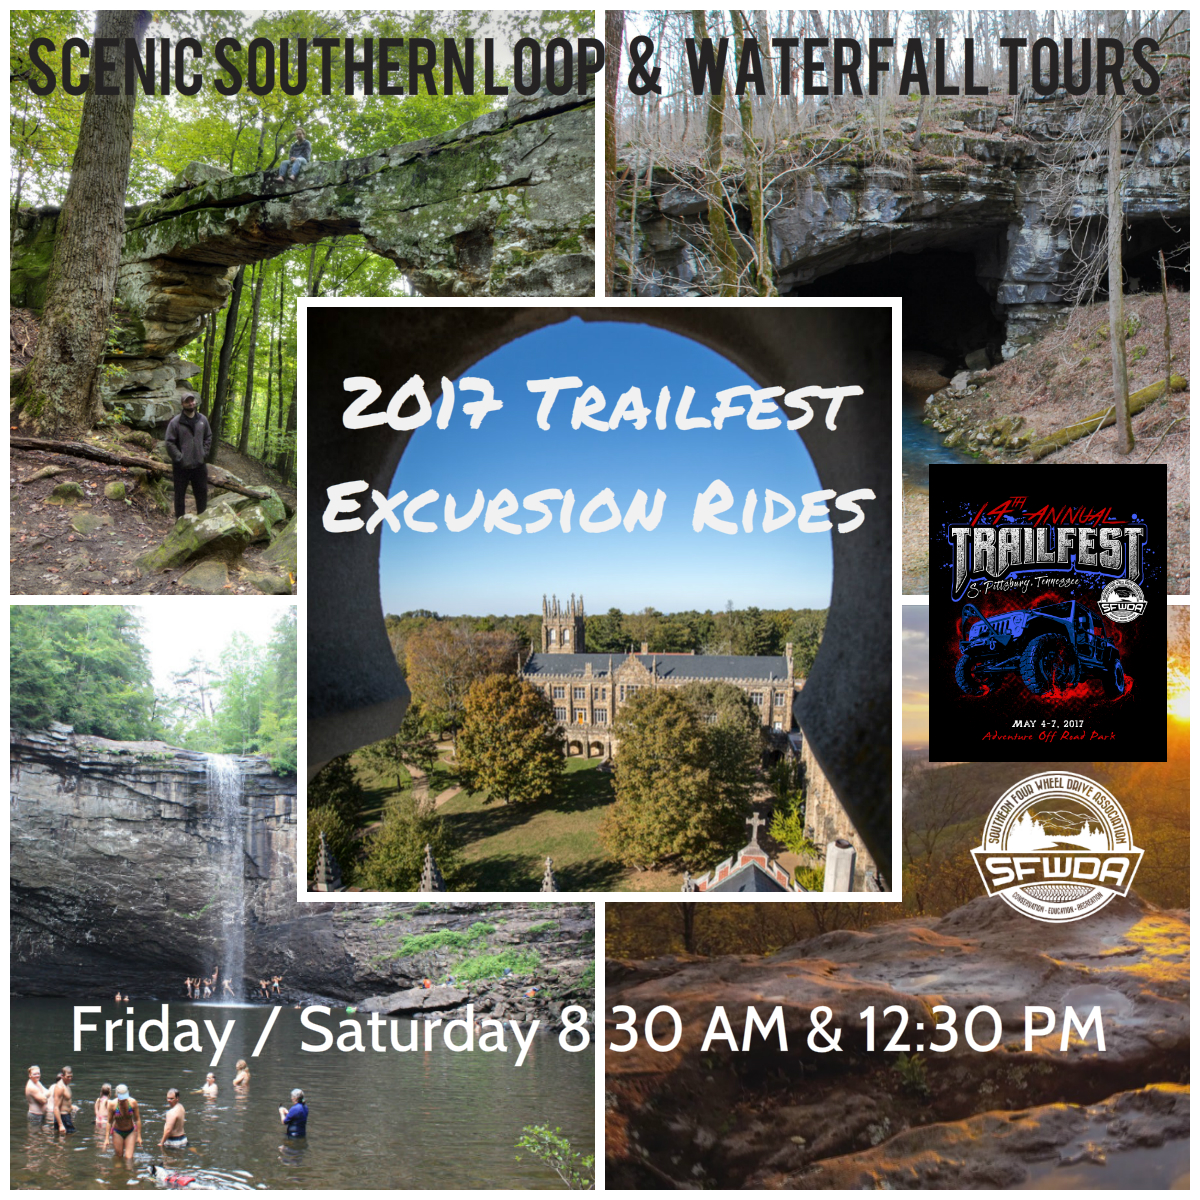 Guided Excursion Rides are included with admission to the event.